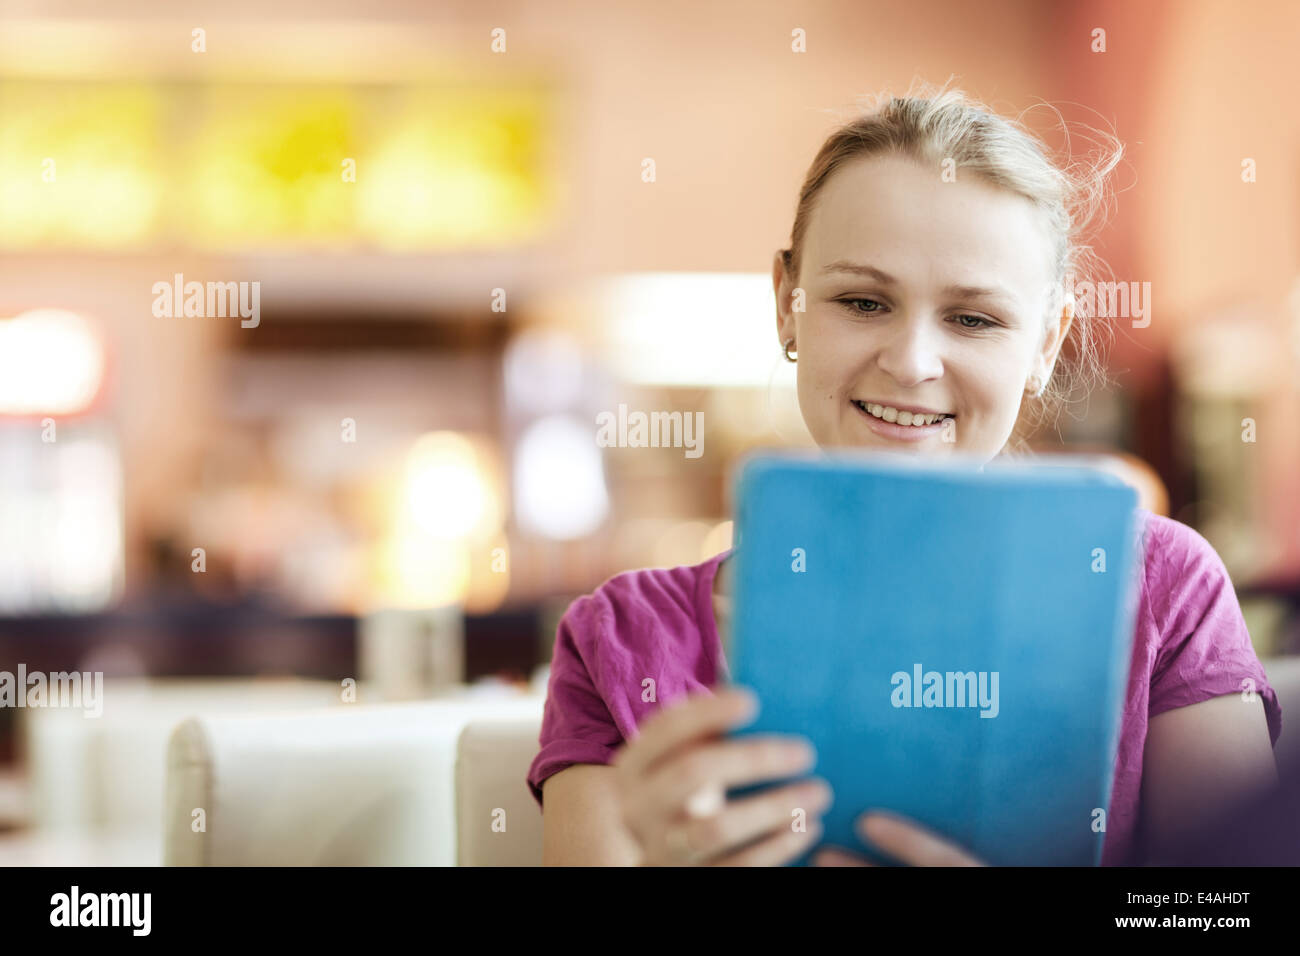 Young happy woman in cafe with tablet PC Photo Stock